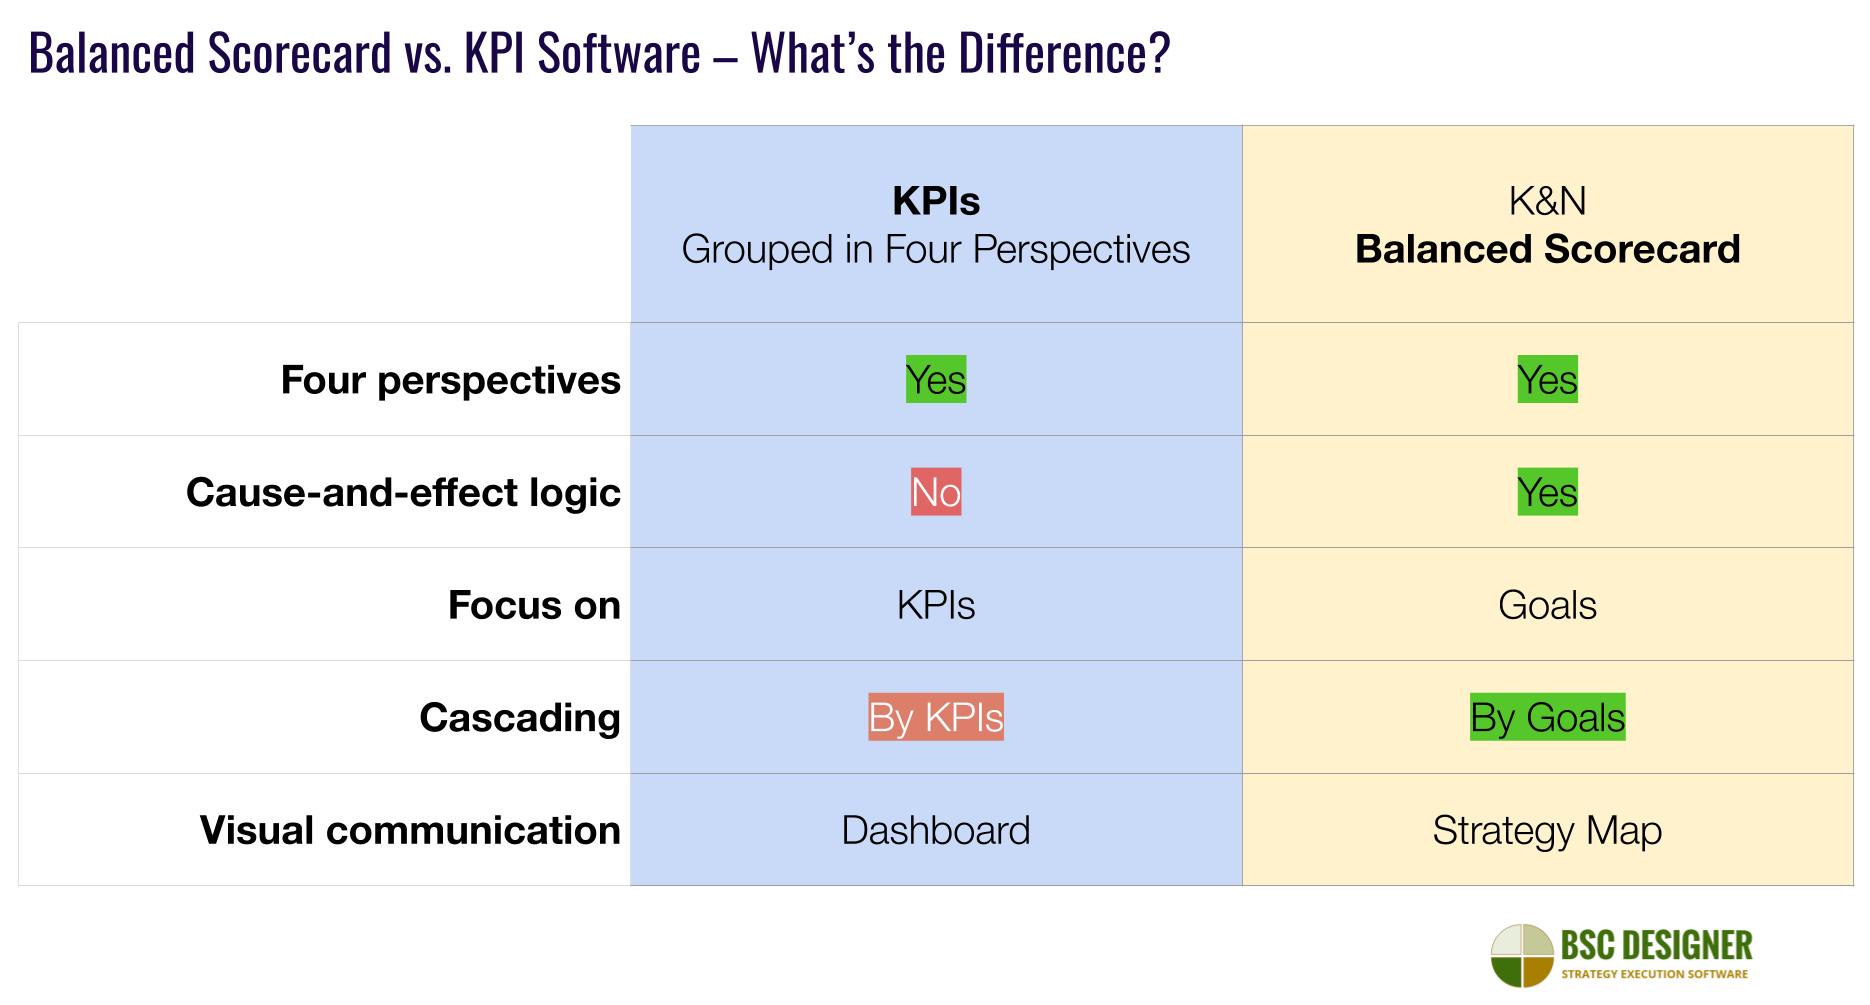 Software for K&N Balanced Scorecard compared to the software for KPIs